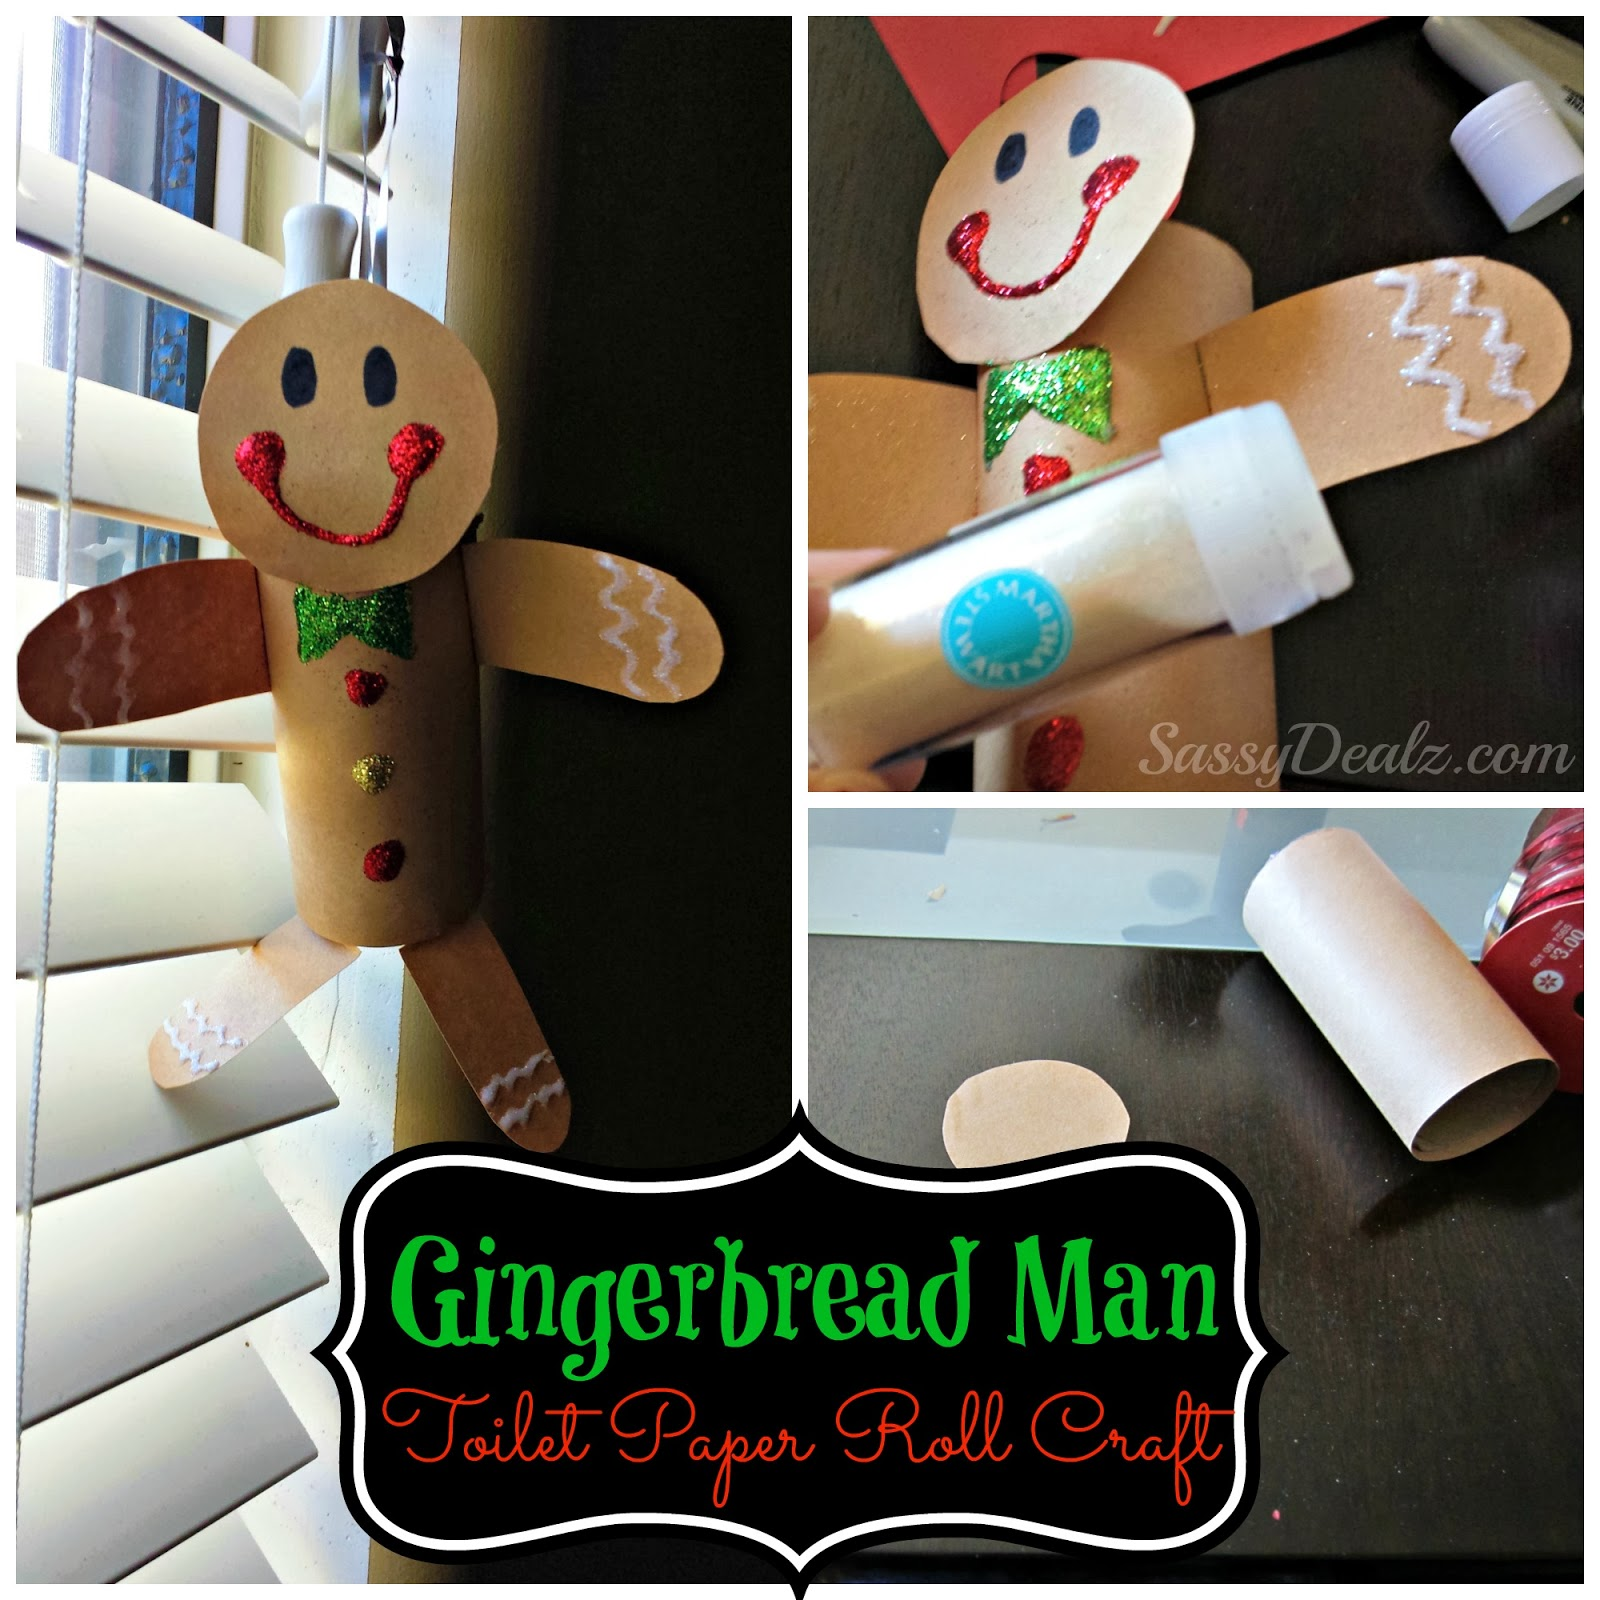 Gingerbread Man Toilet Paper Roll Craft For Kids Cute Christmas Art Project